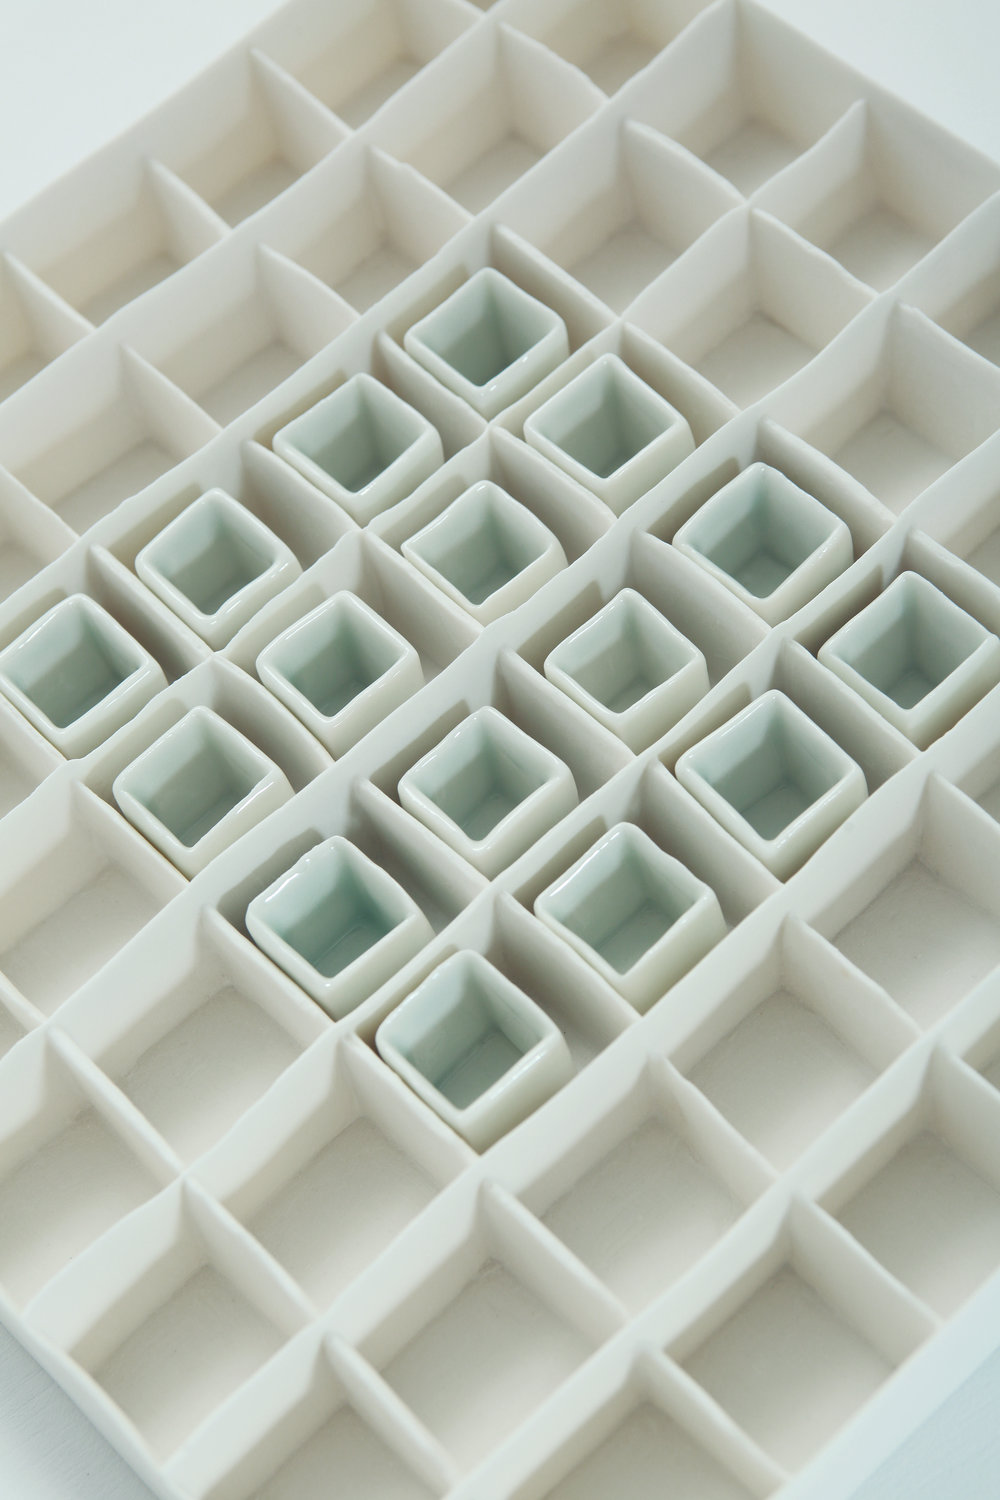 Porcelain Grid With Celadon Blue Glaze Isobel Egan Image 2.jpg